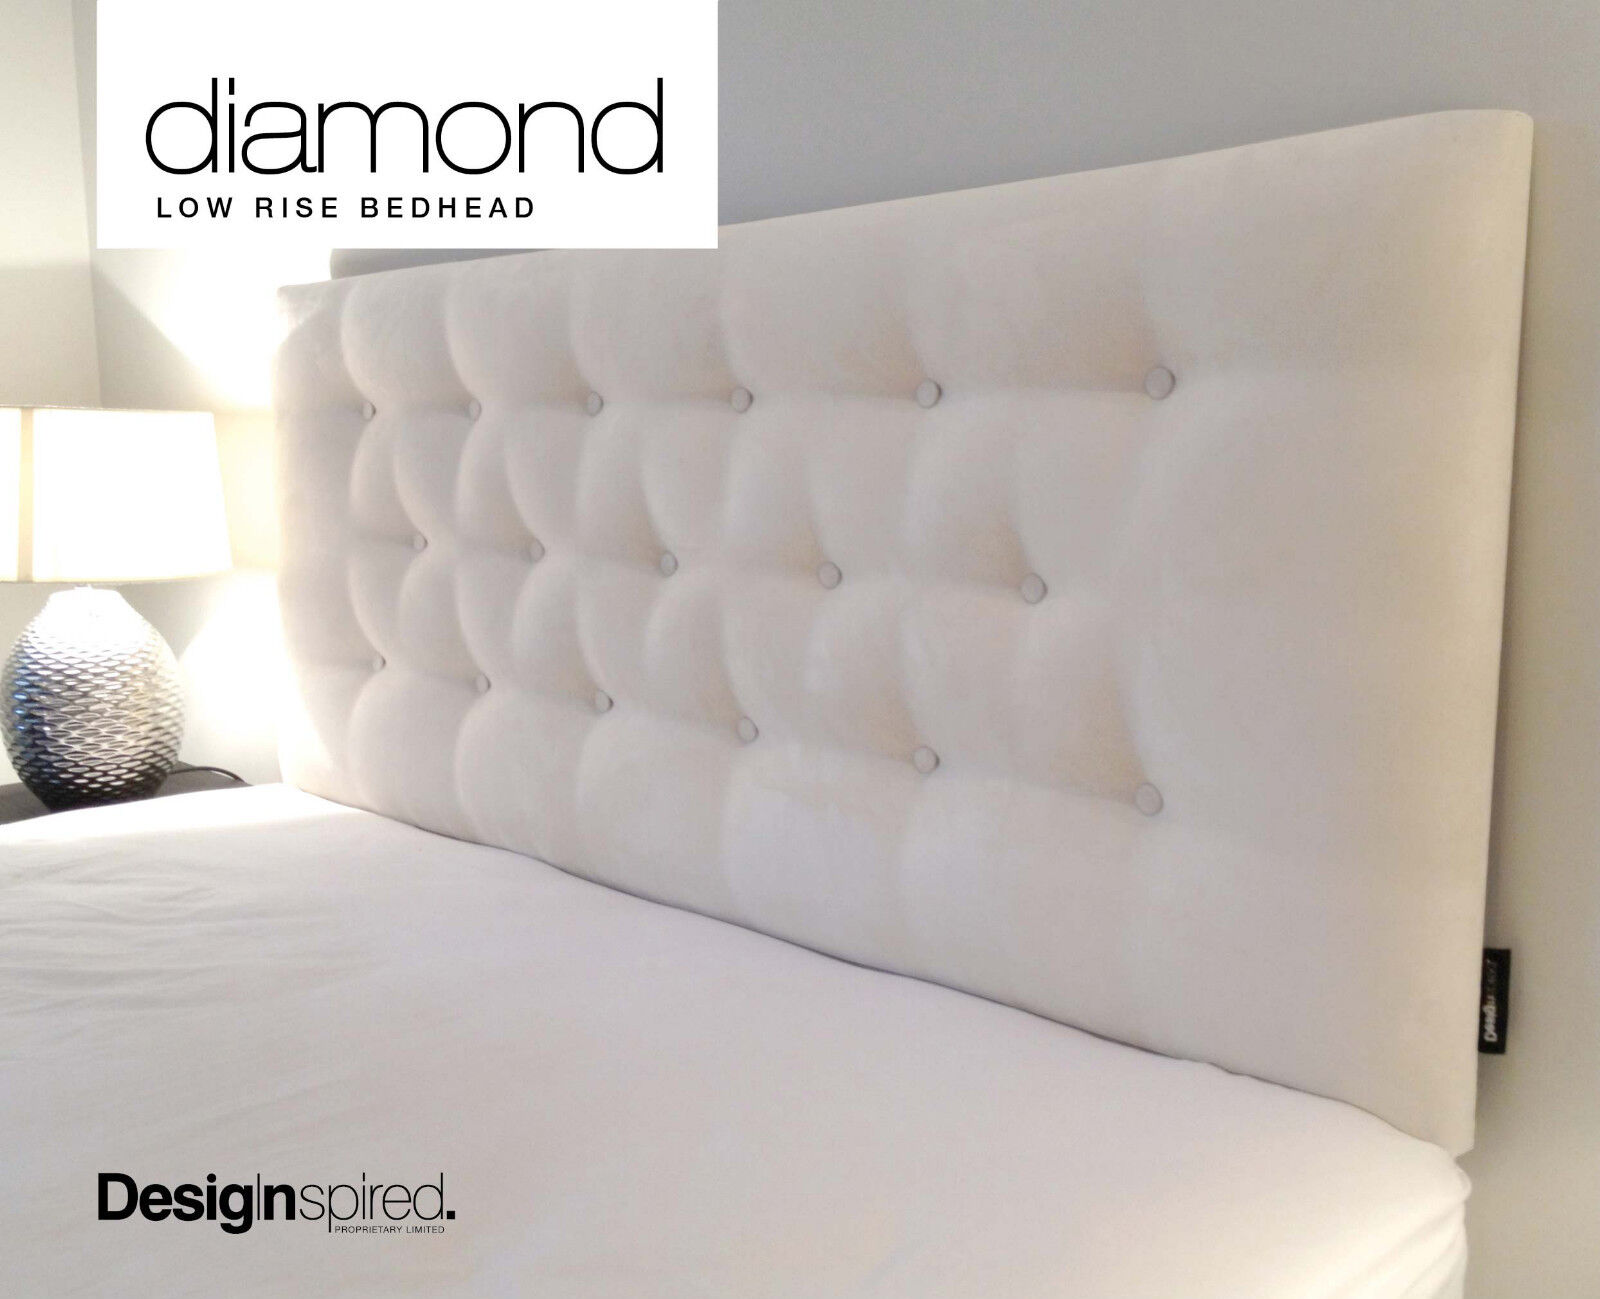 Diamond Low Rise Upholstered Bedhead Headboard For Queen